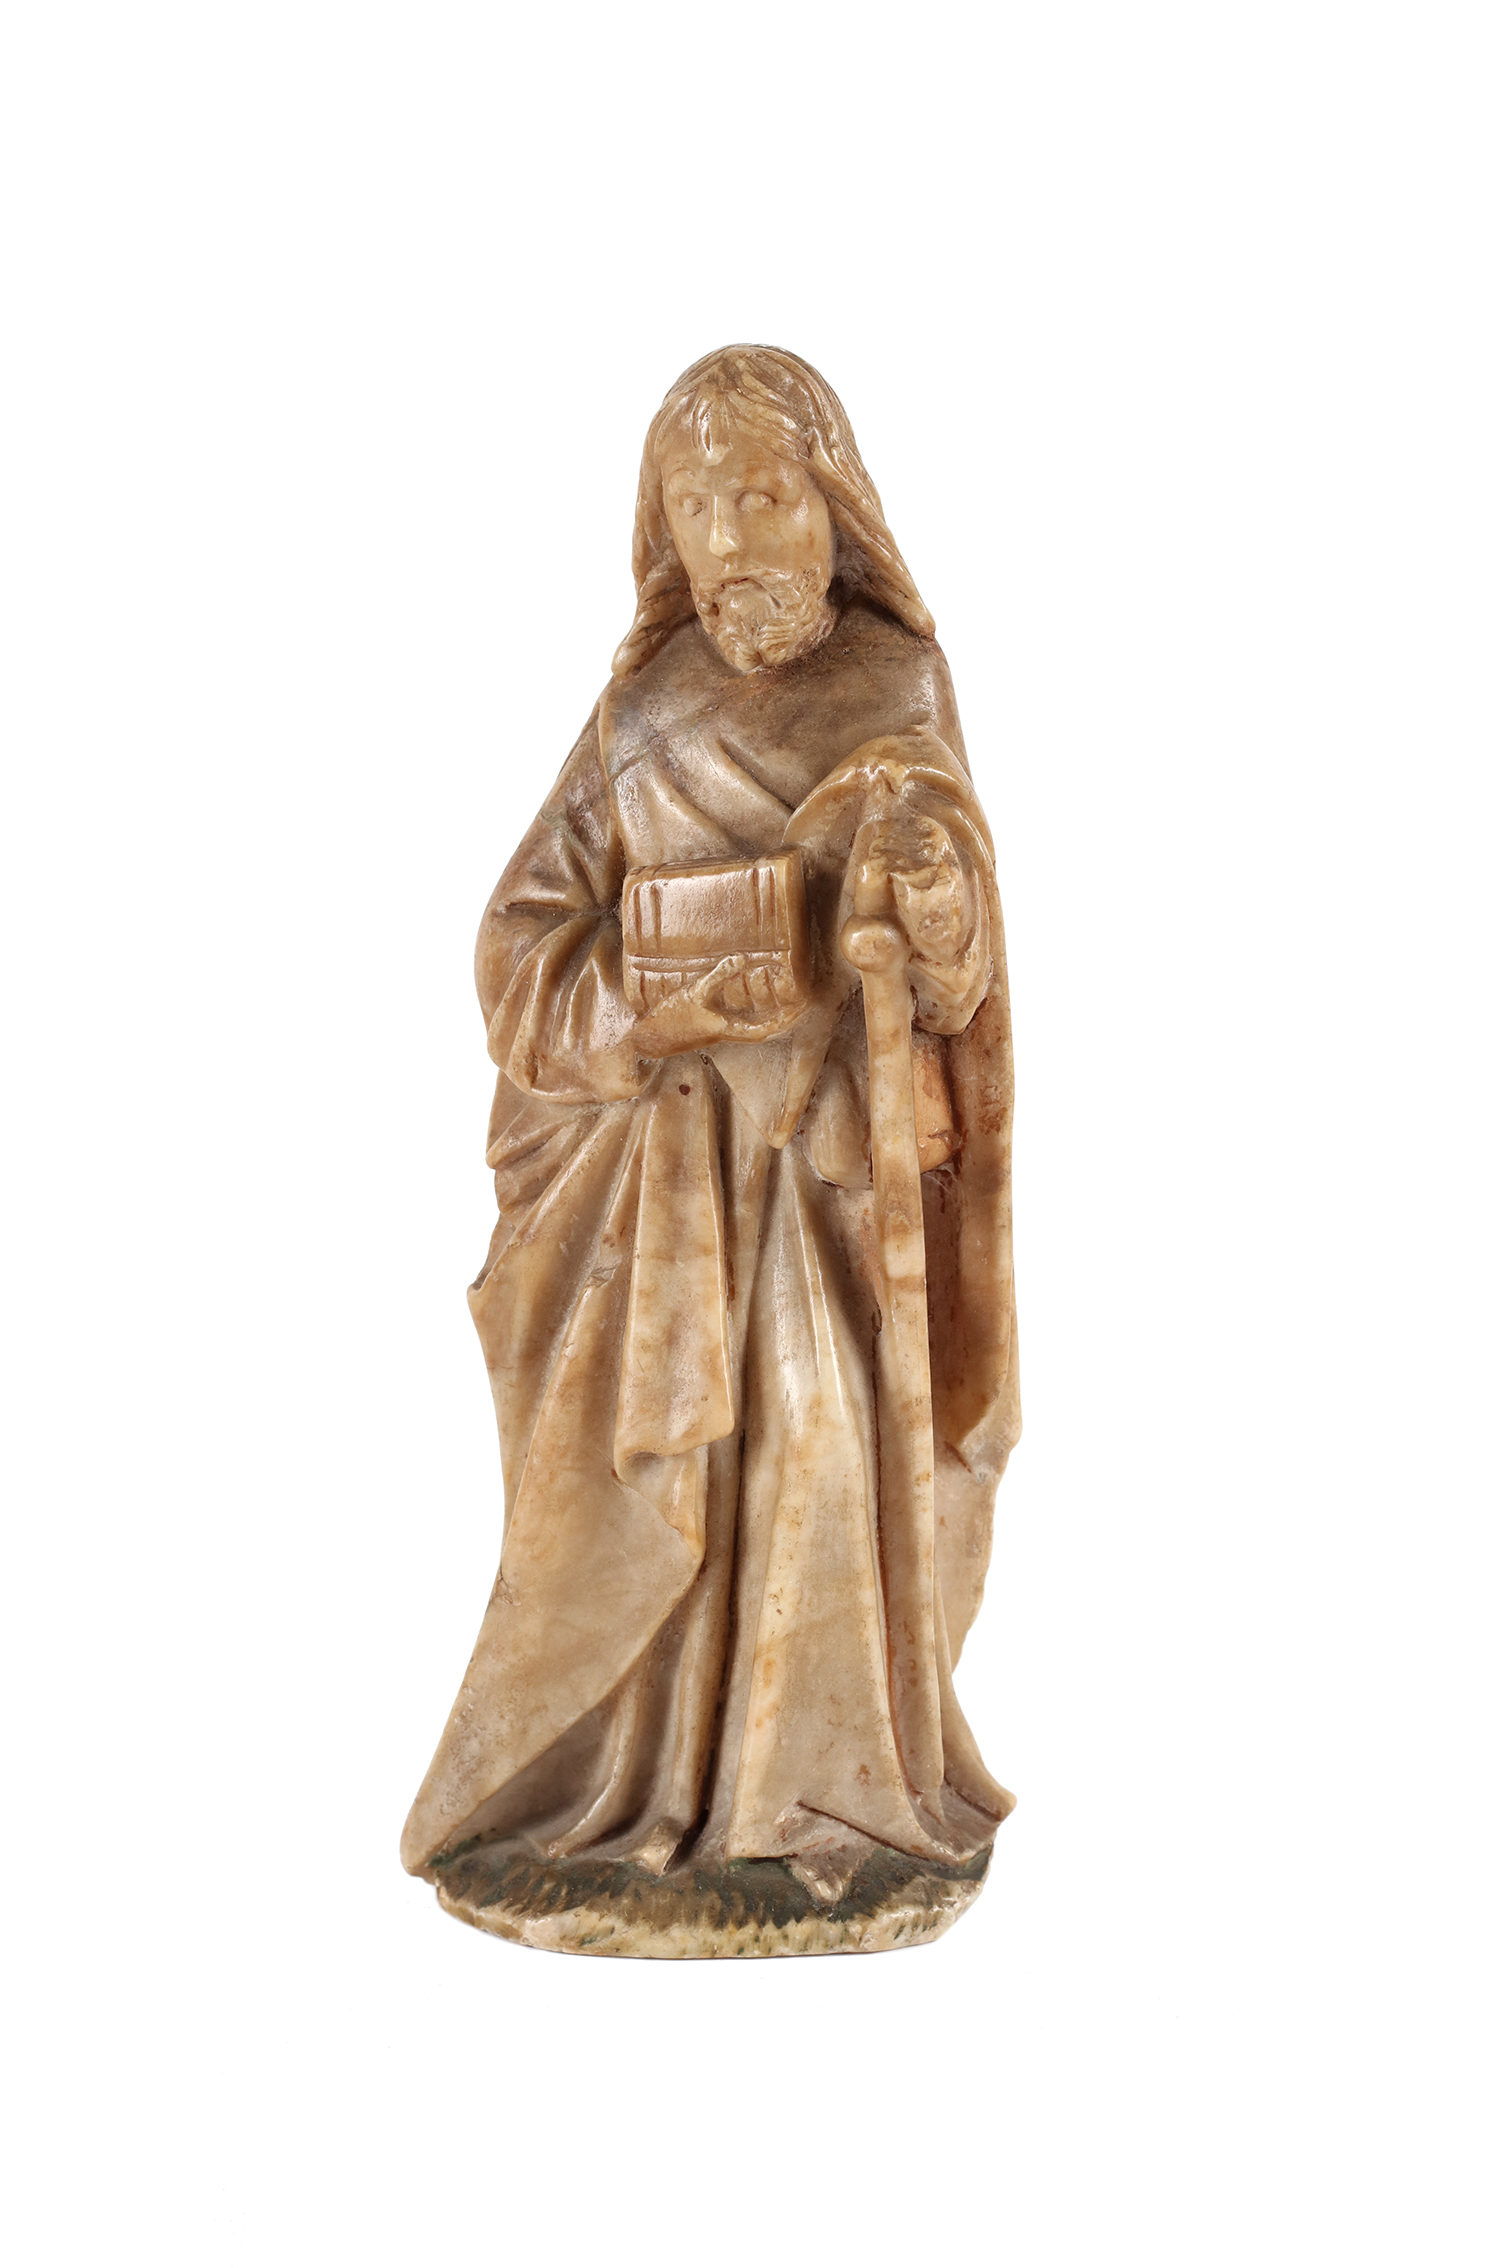 An alabaster figure of an apostle with a book and pilgrim's stick.